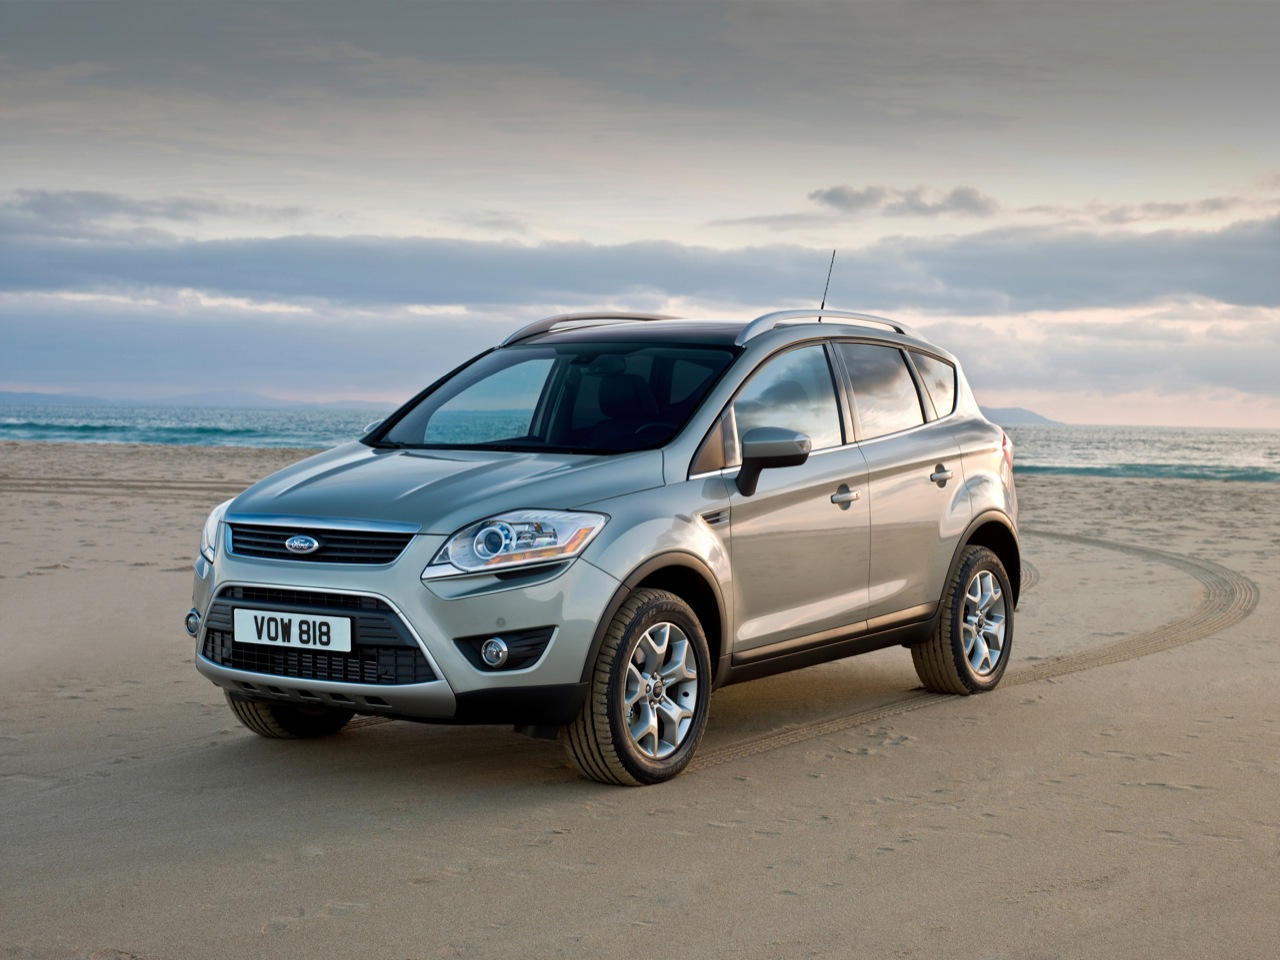 Pictures of ford kuga 2010 #2